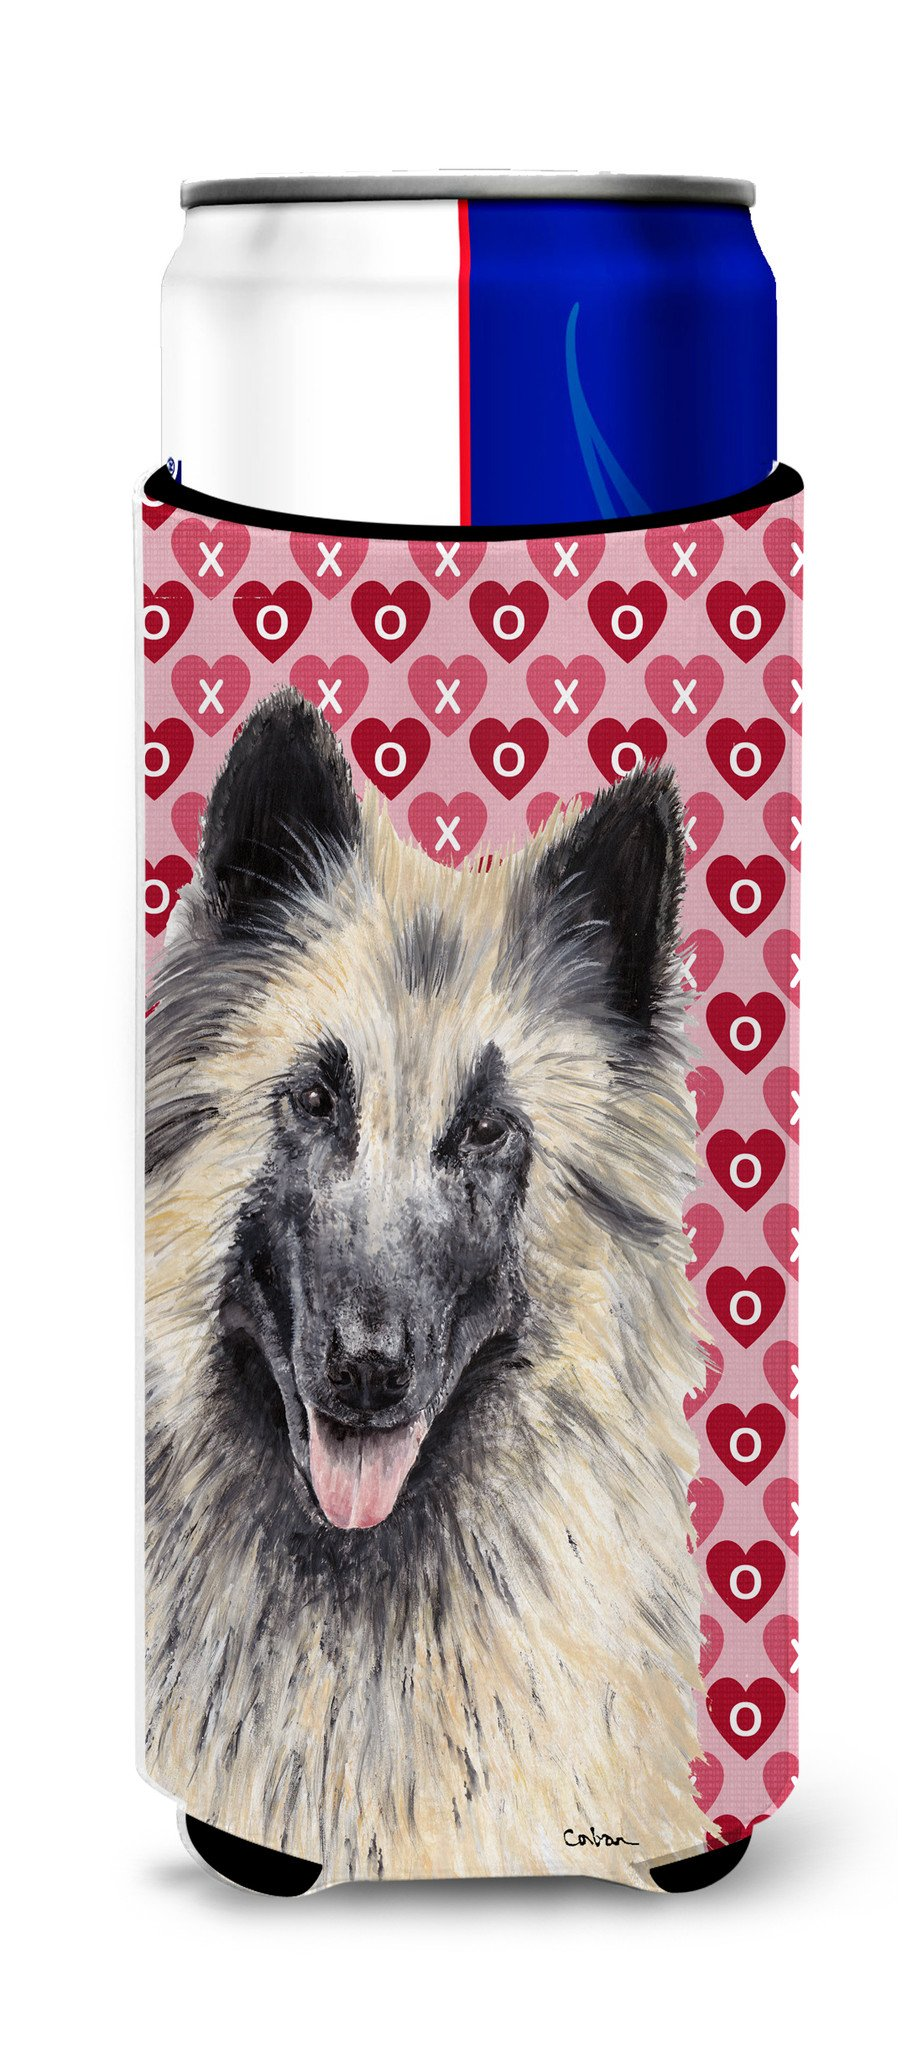 Belgian Tervuren Hearts Love and Valentine's Day Portrait Ultra Beverage Insulators for slim cans SC9247MUK by Caroline's Treasures